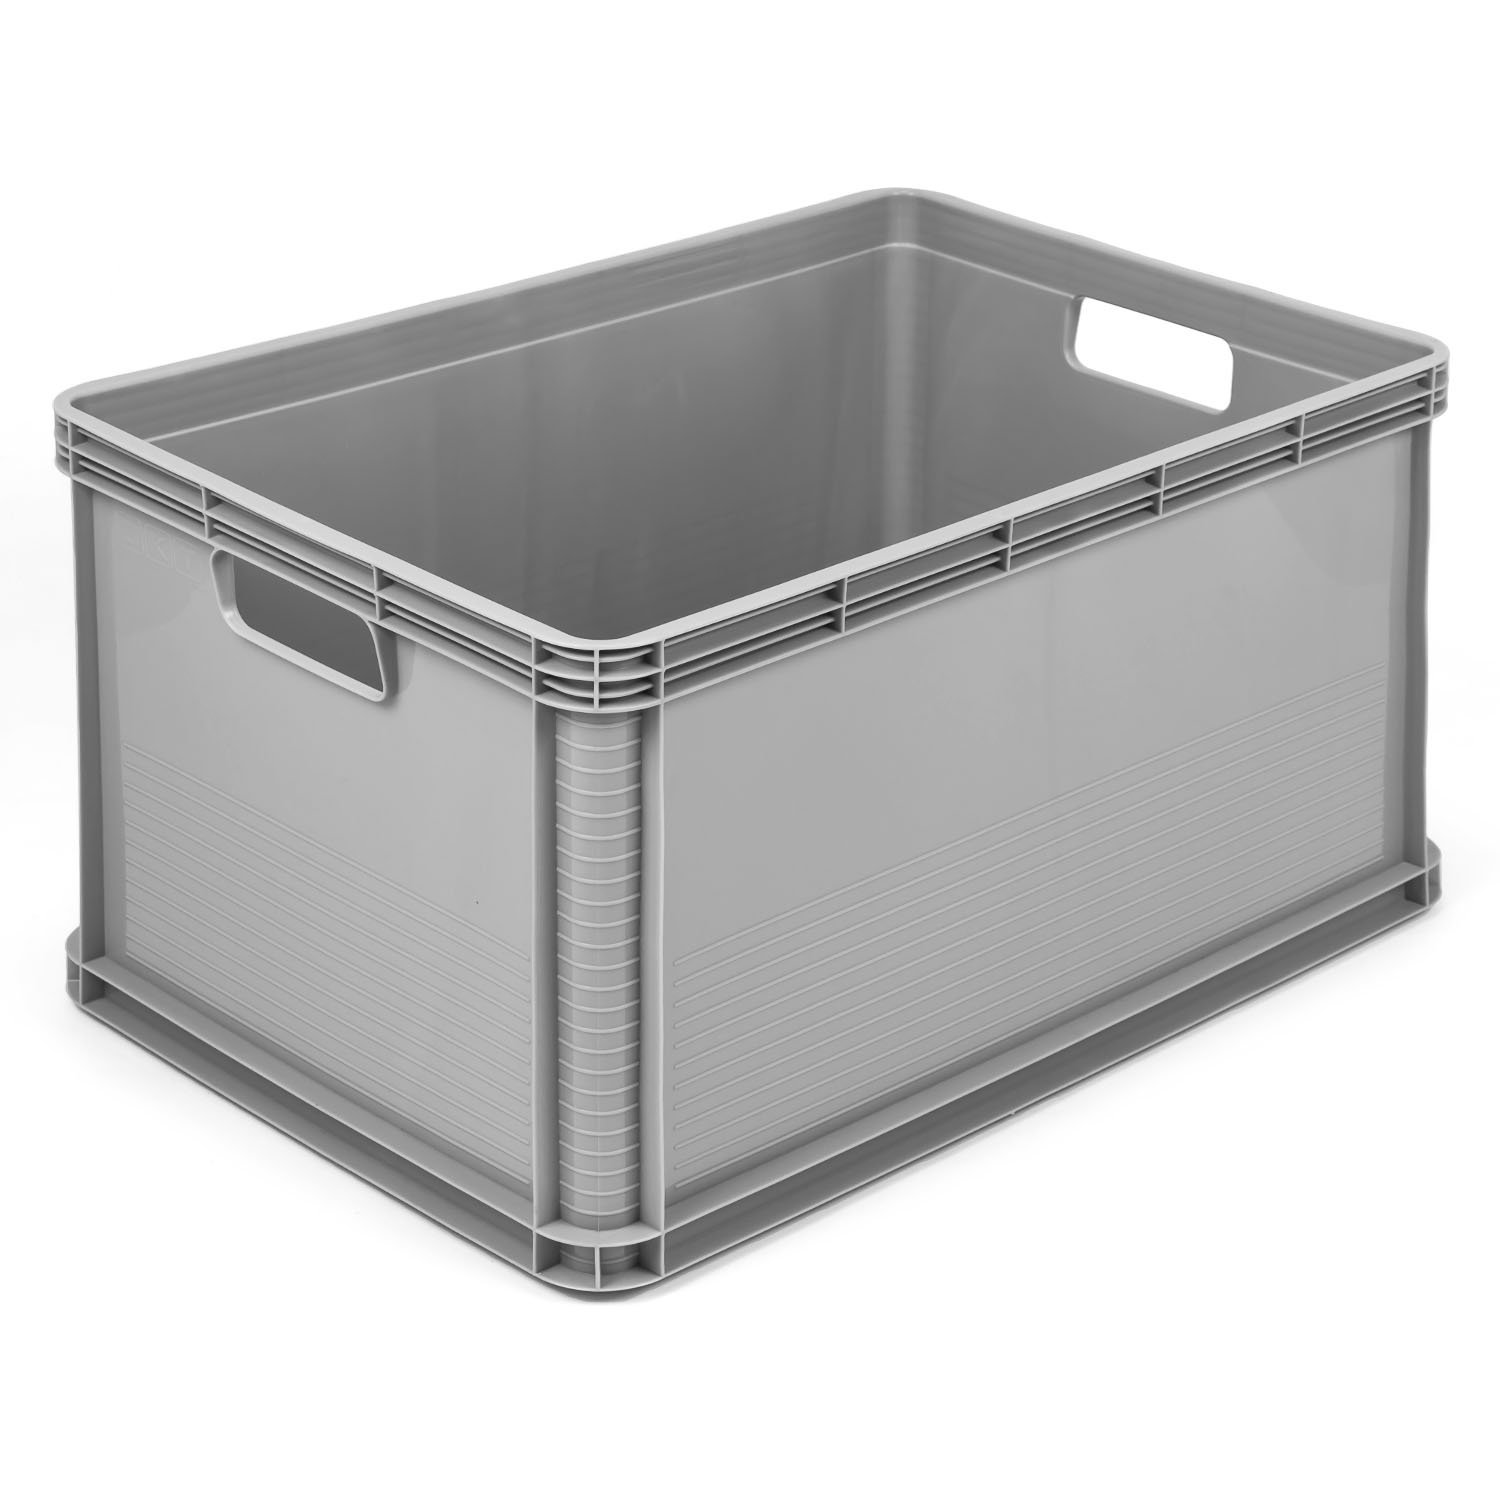 3 x 64 Litre Robusto Industrial Plastic Stacking Euro Storage Containers Boxes Crates GREY